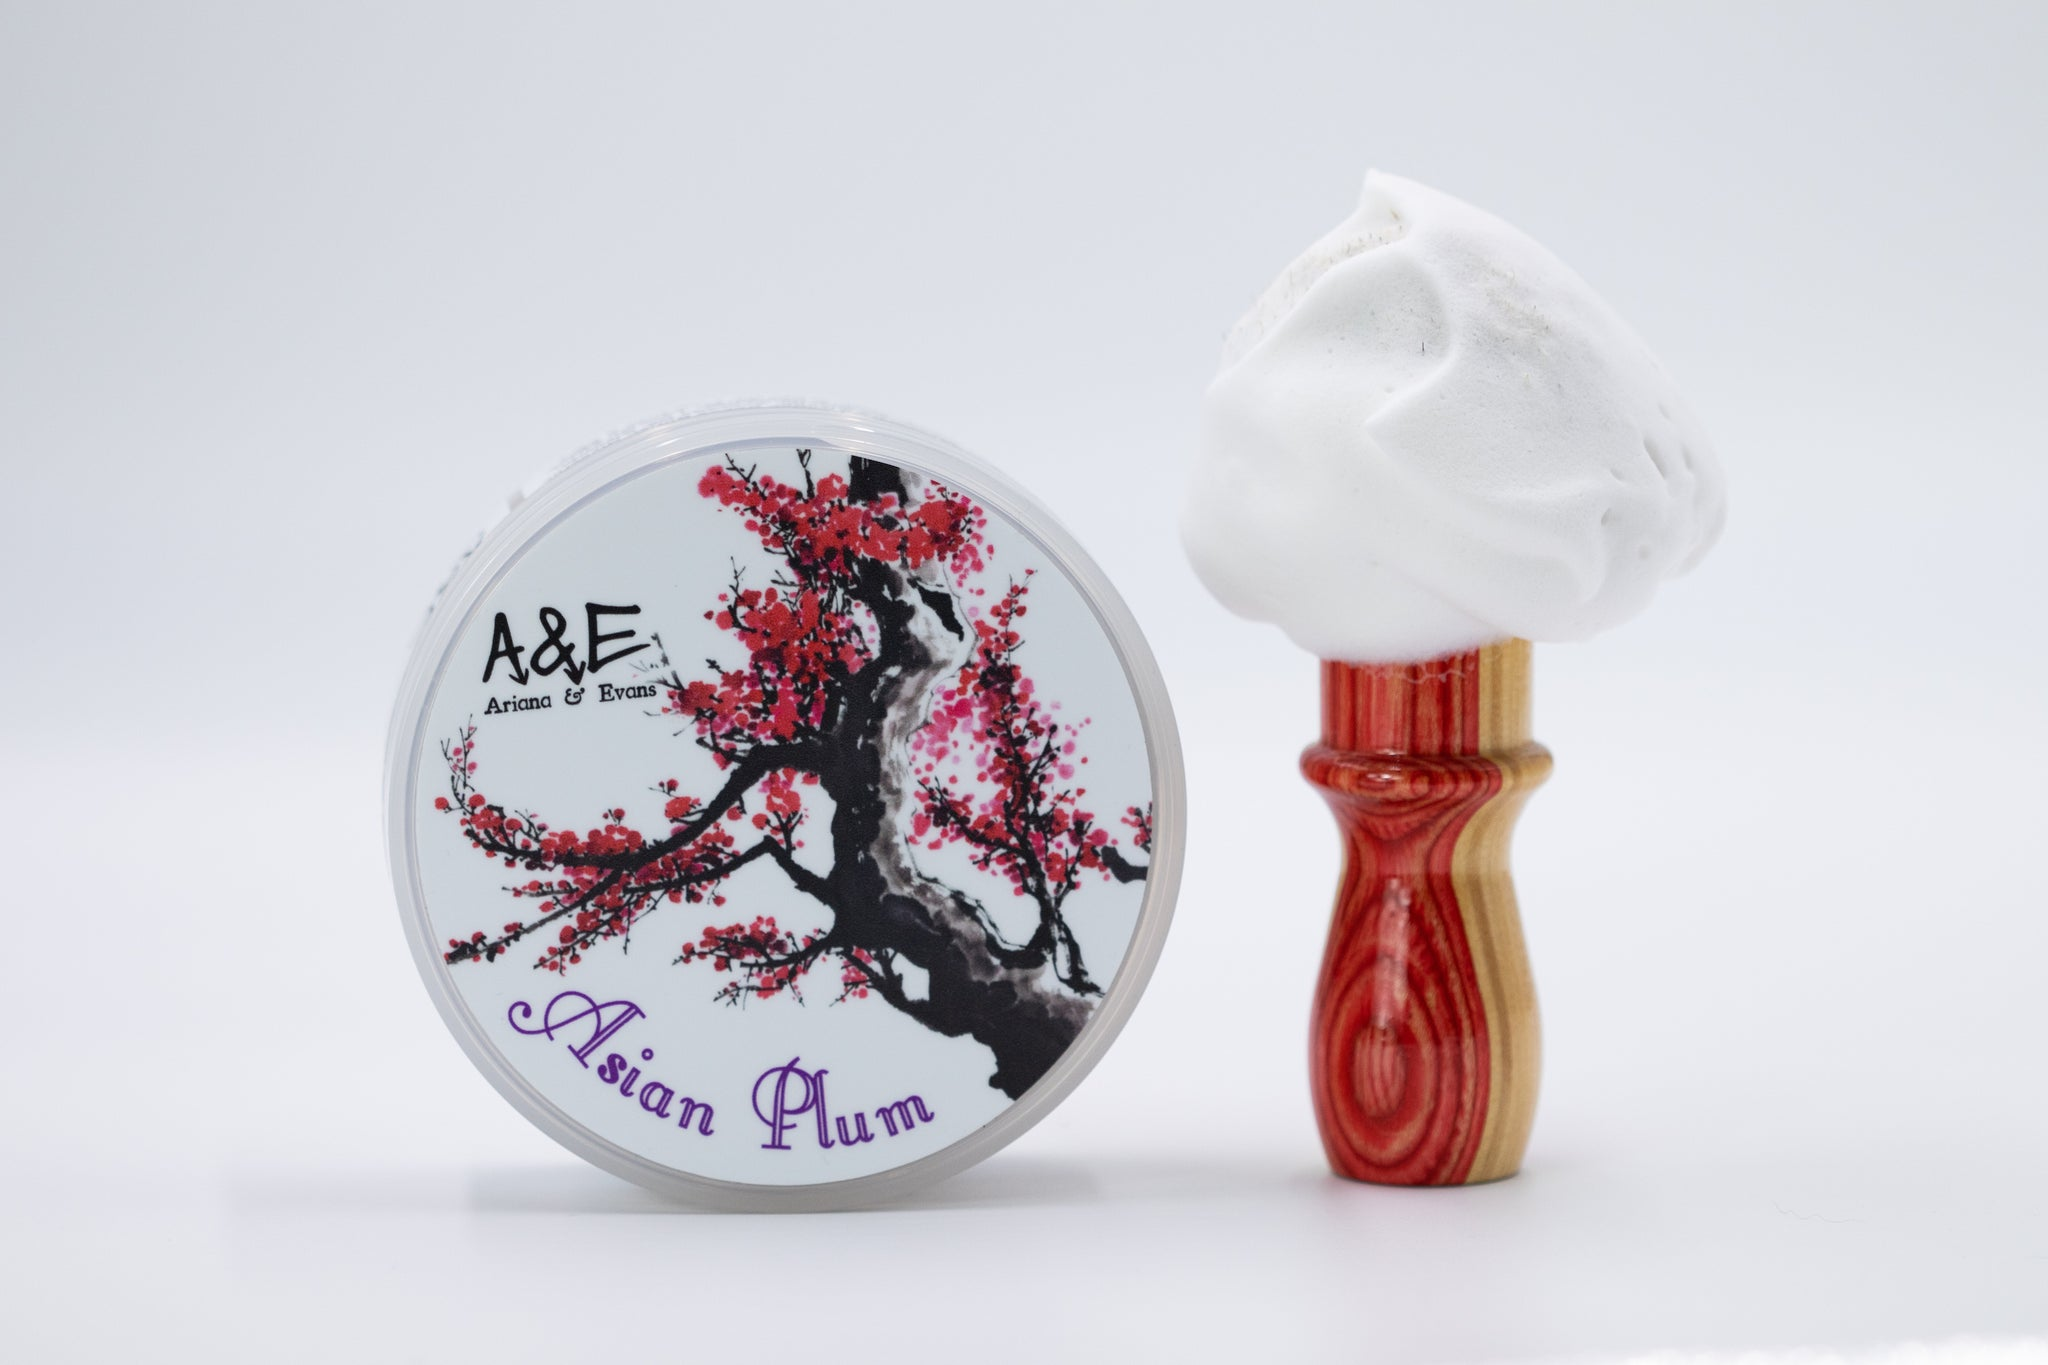 Ariana & Evans 'Asian Plum' Luxury Tallow Shaving Soap